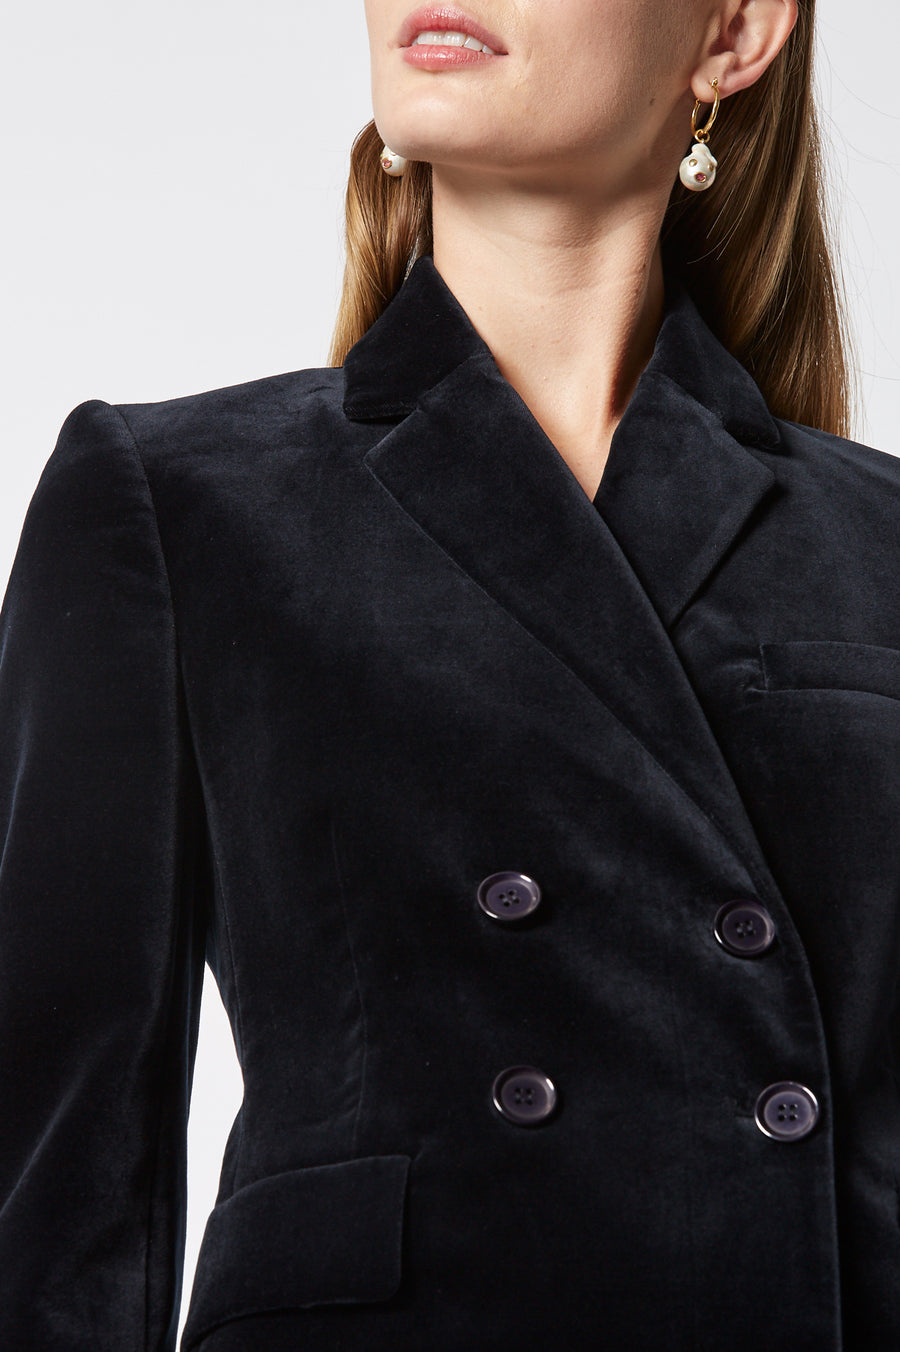 Velvet Jacket, slim fit, padded shoulders, double breasted lapels, side flap pocket, slightly nipped-in waist, color navy